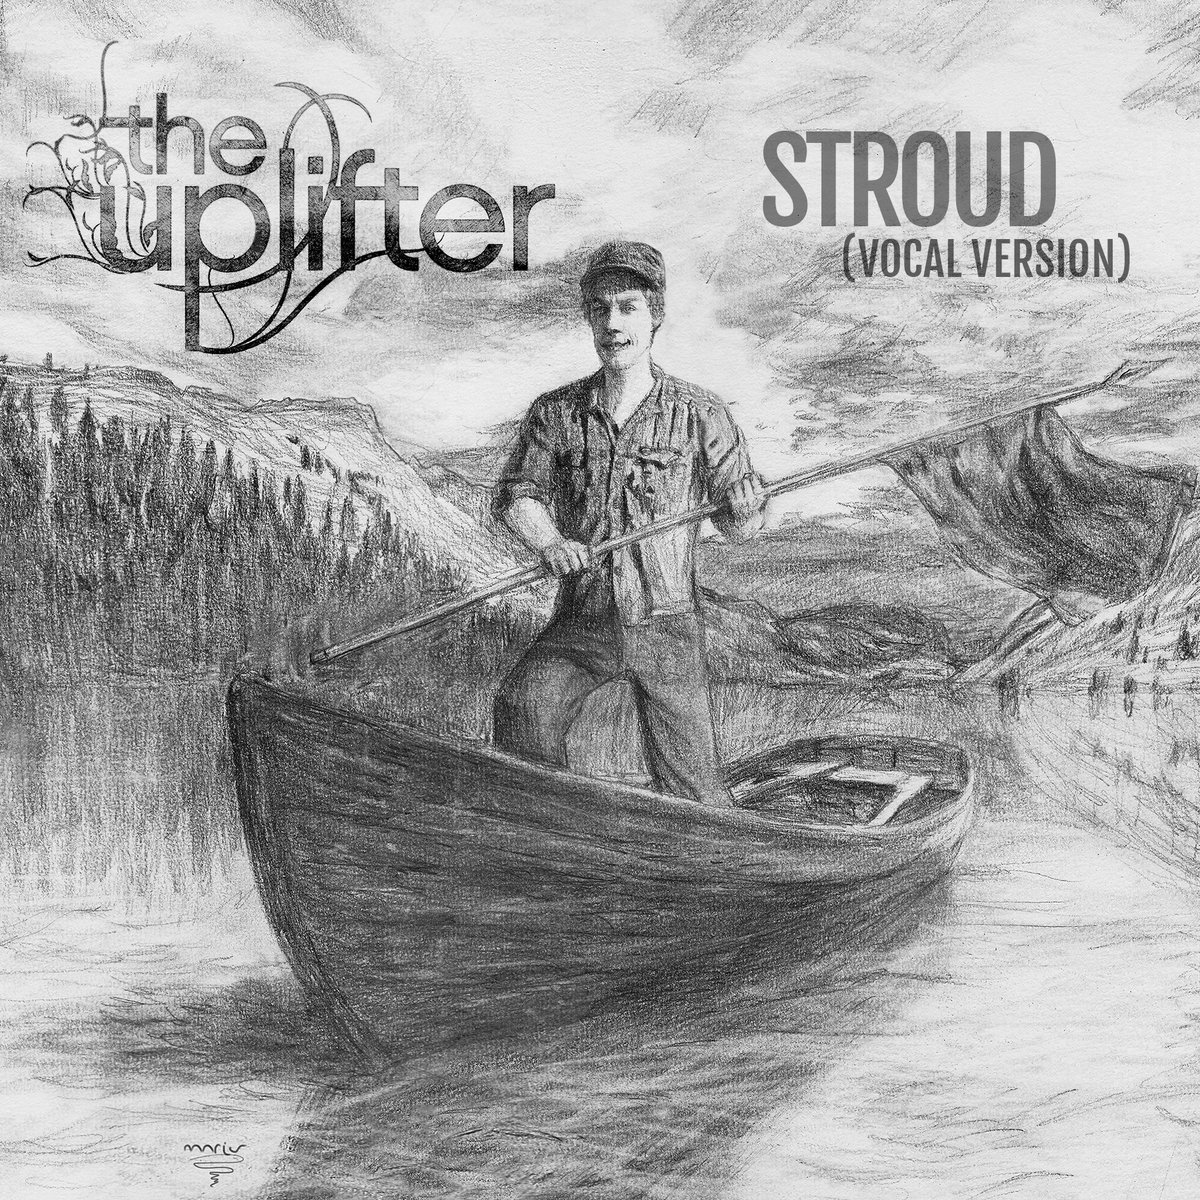 Stroud (Vocal Version) by The Uplifter